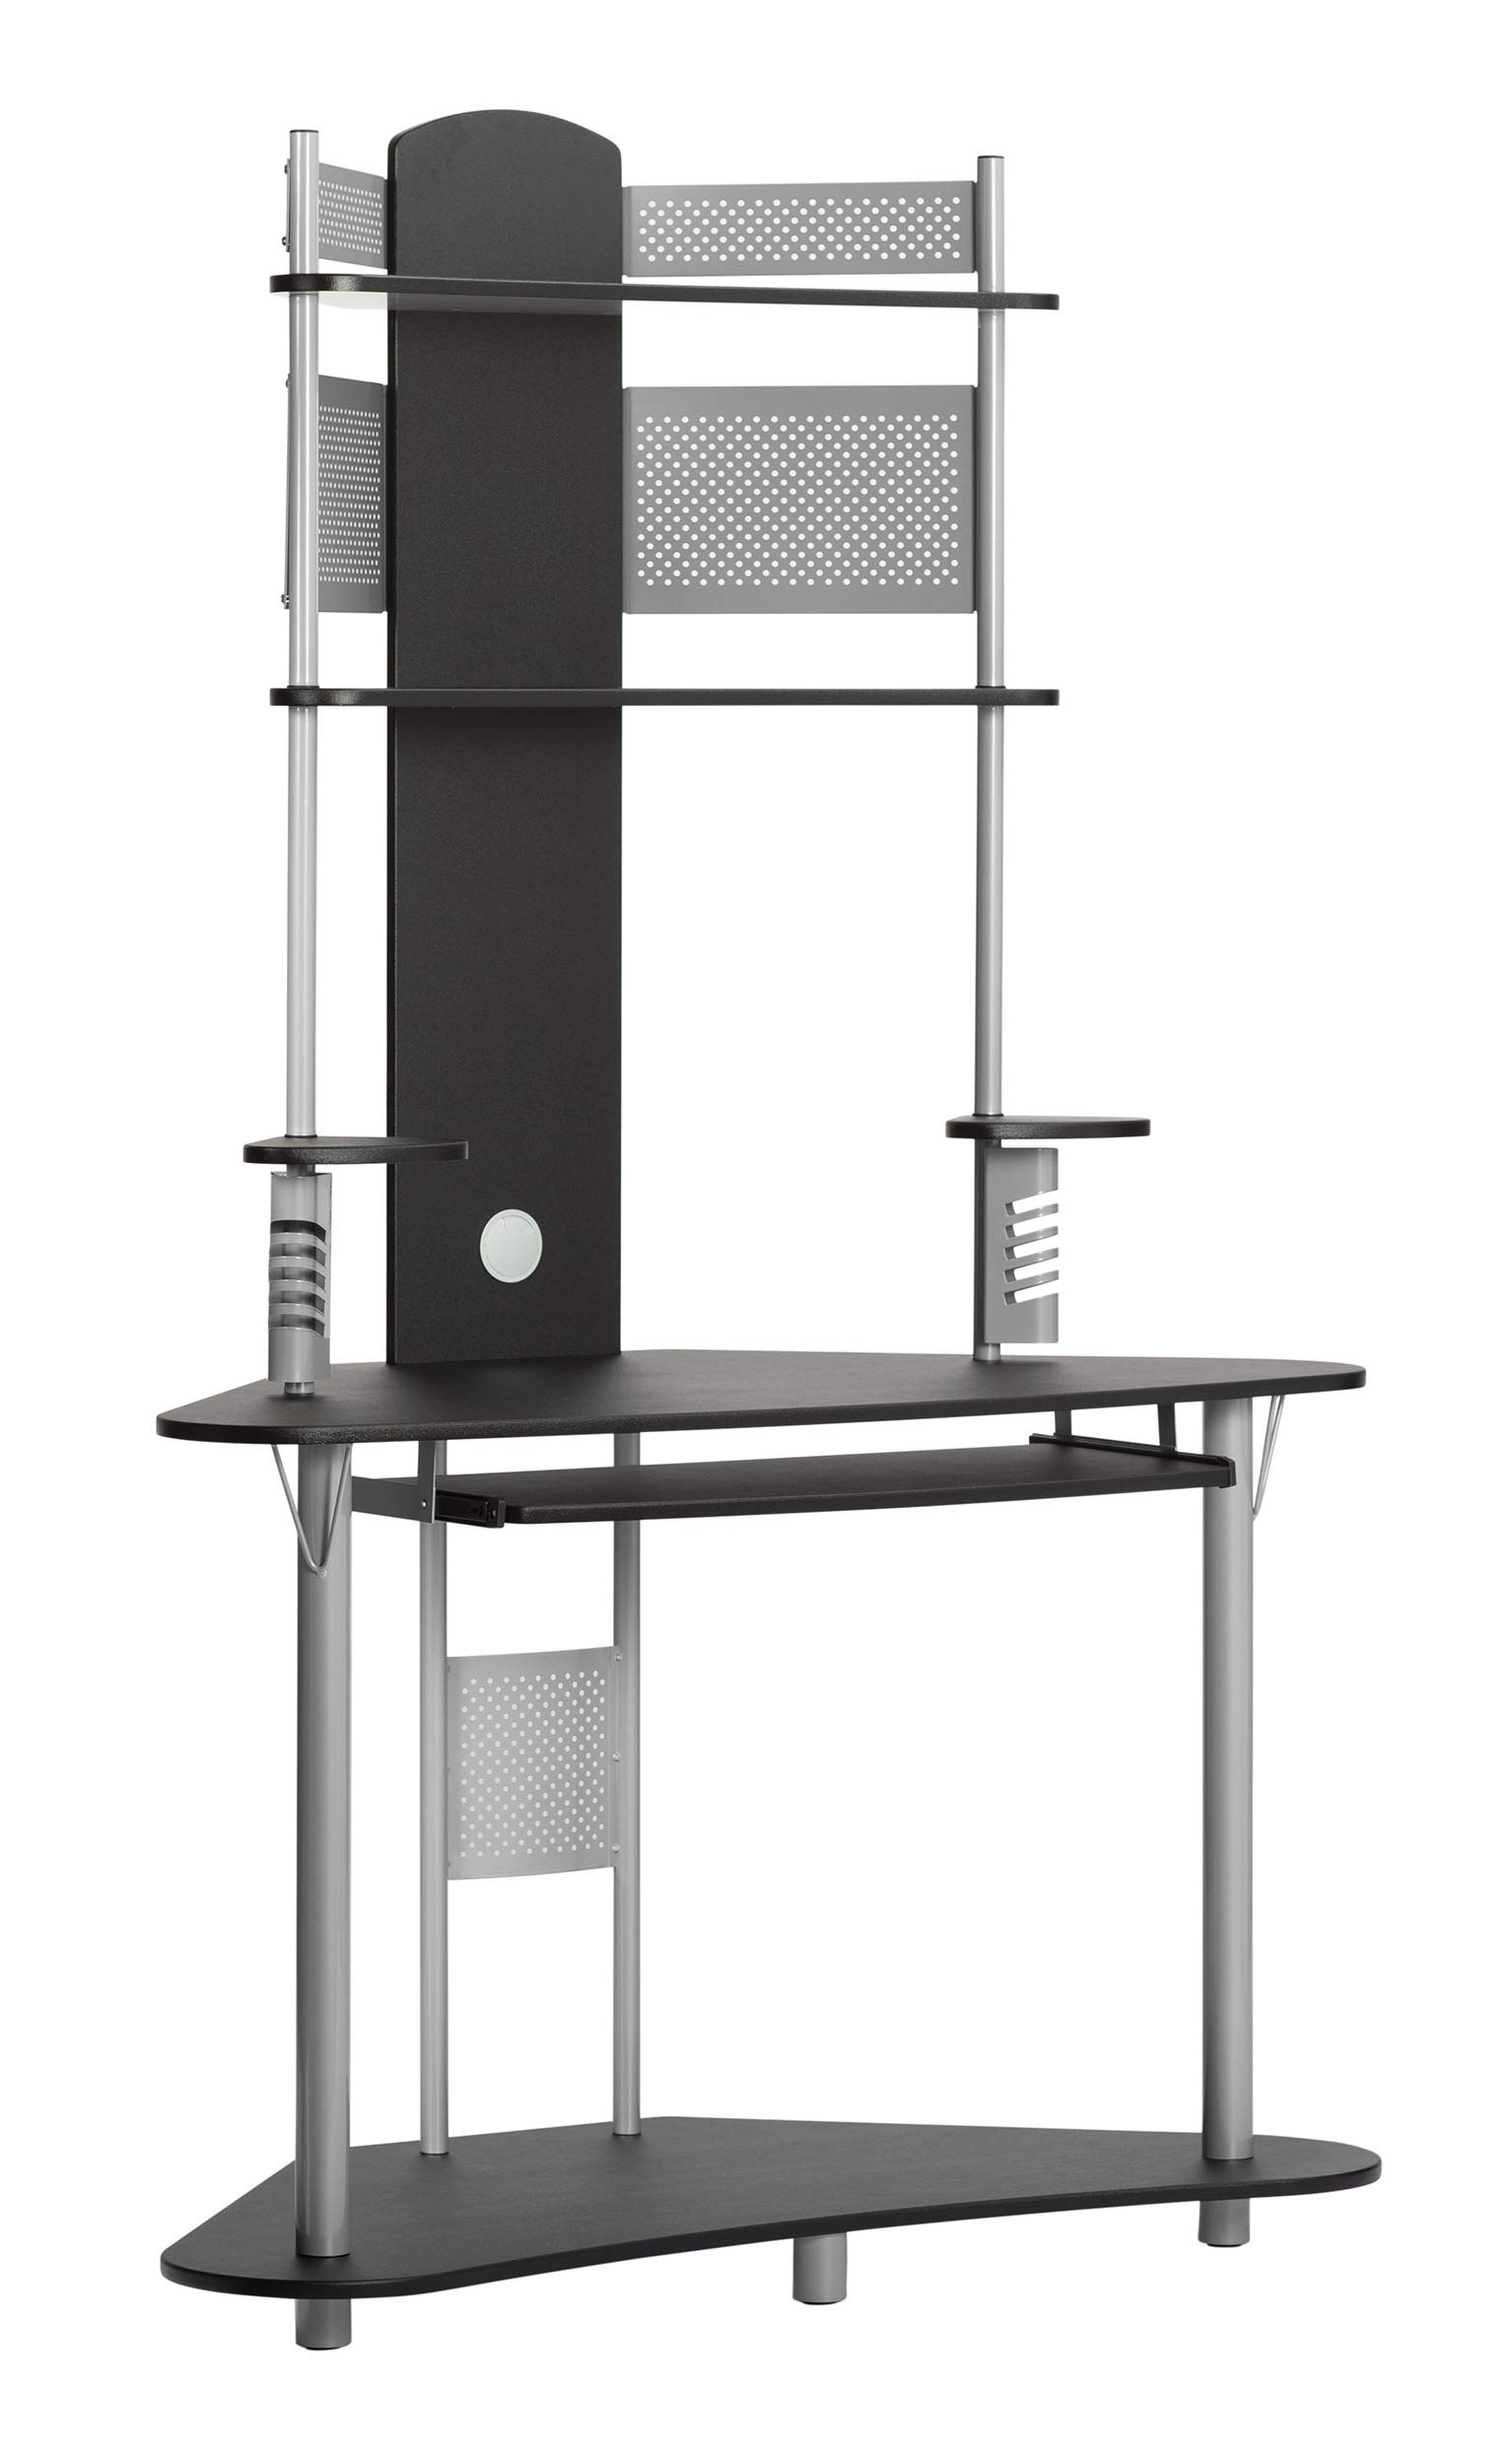 Calico Designs Arch Tower Corner Computer Tower Multipurpose Home Office Computer Writing Desk - Silver / Black, 50510 by Calico Designs